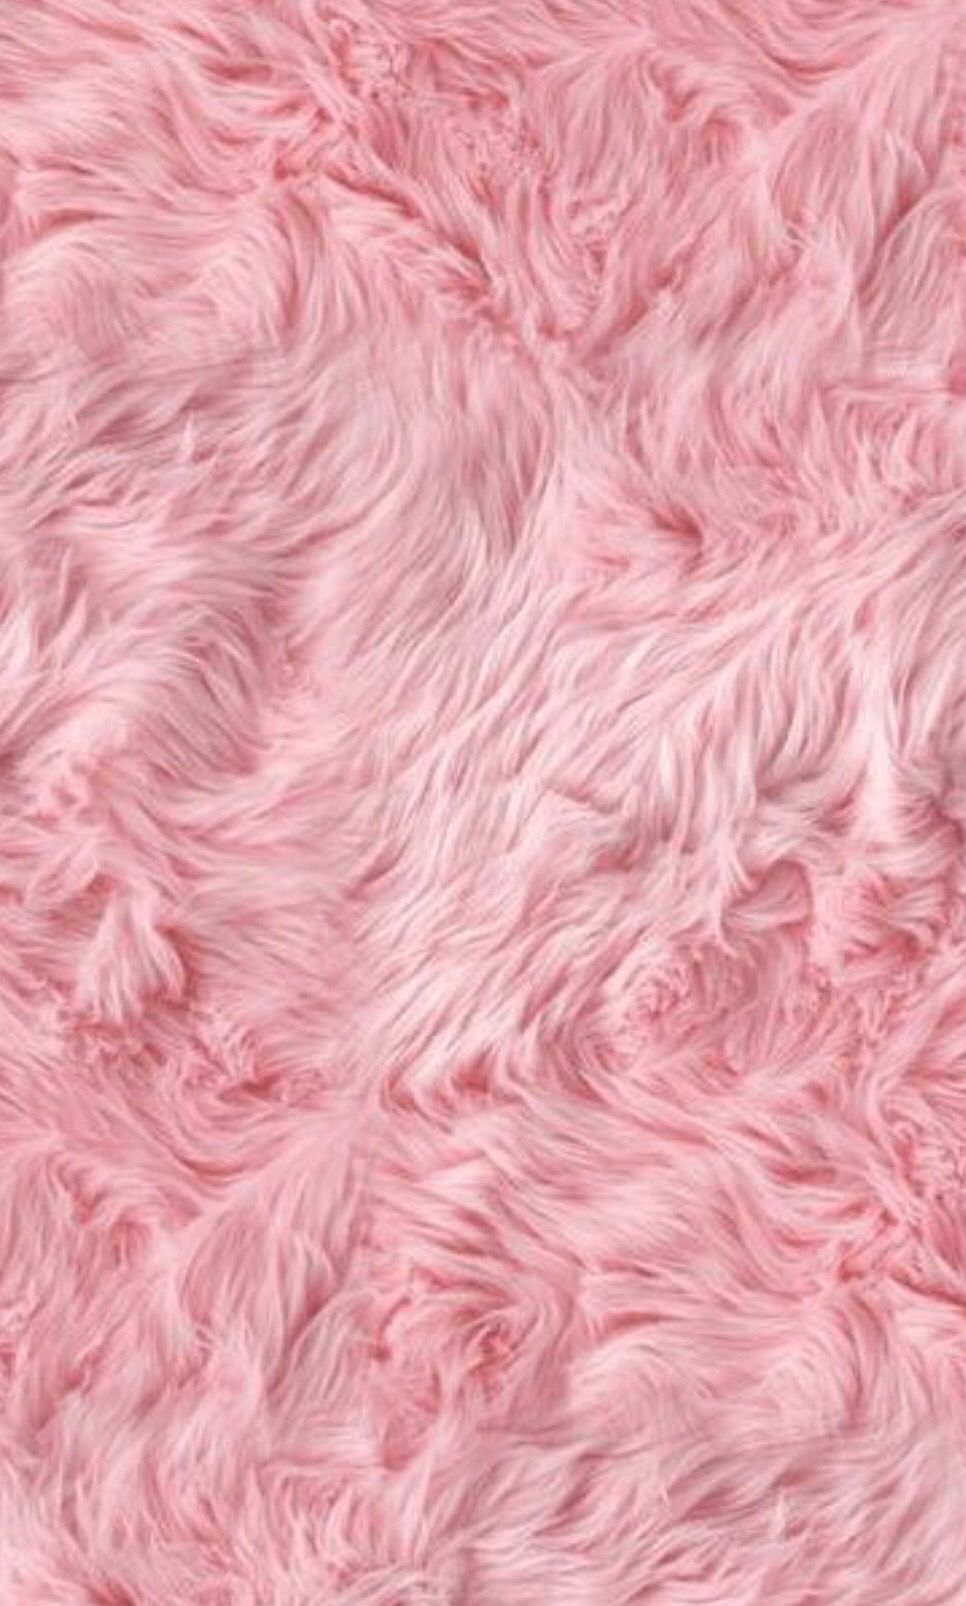 25 Fluffy Iphone Wallpapers Download At Wallpaperbro Pink Wallpaper Tumblr Wallpaper Iphone Wallpaper Aesthetic pink fur wallpaper hd